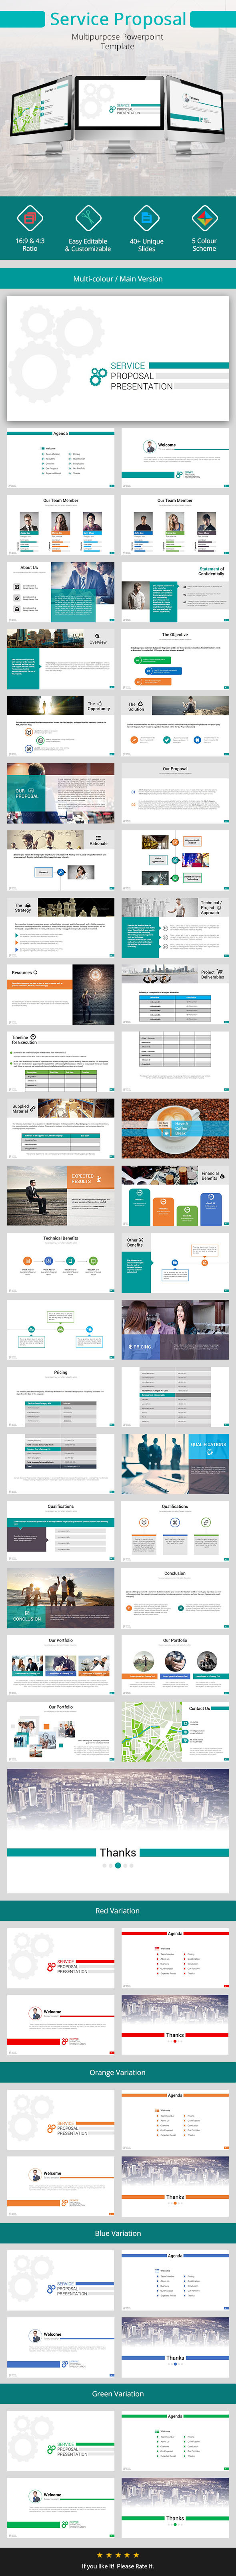 Service Proposal Presentation - Business PowerPoint Templates